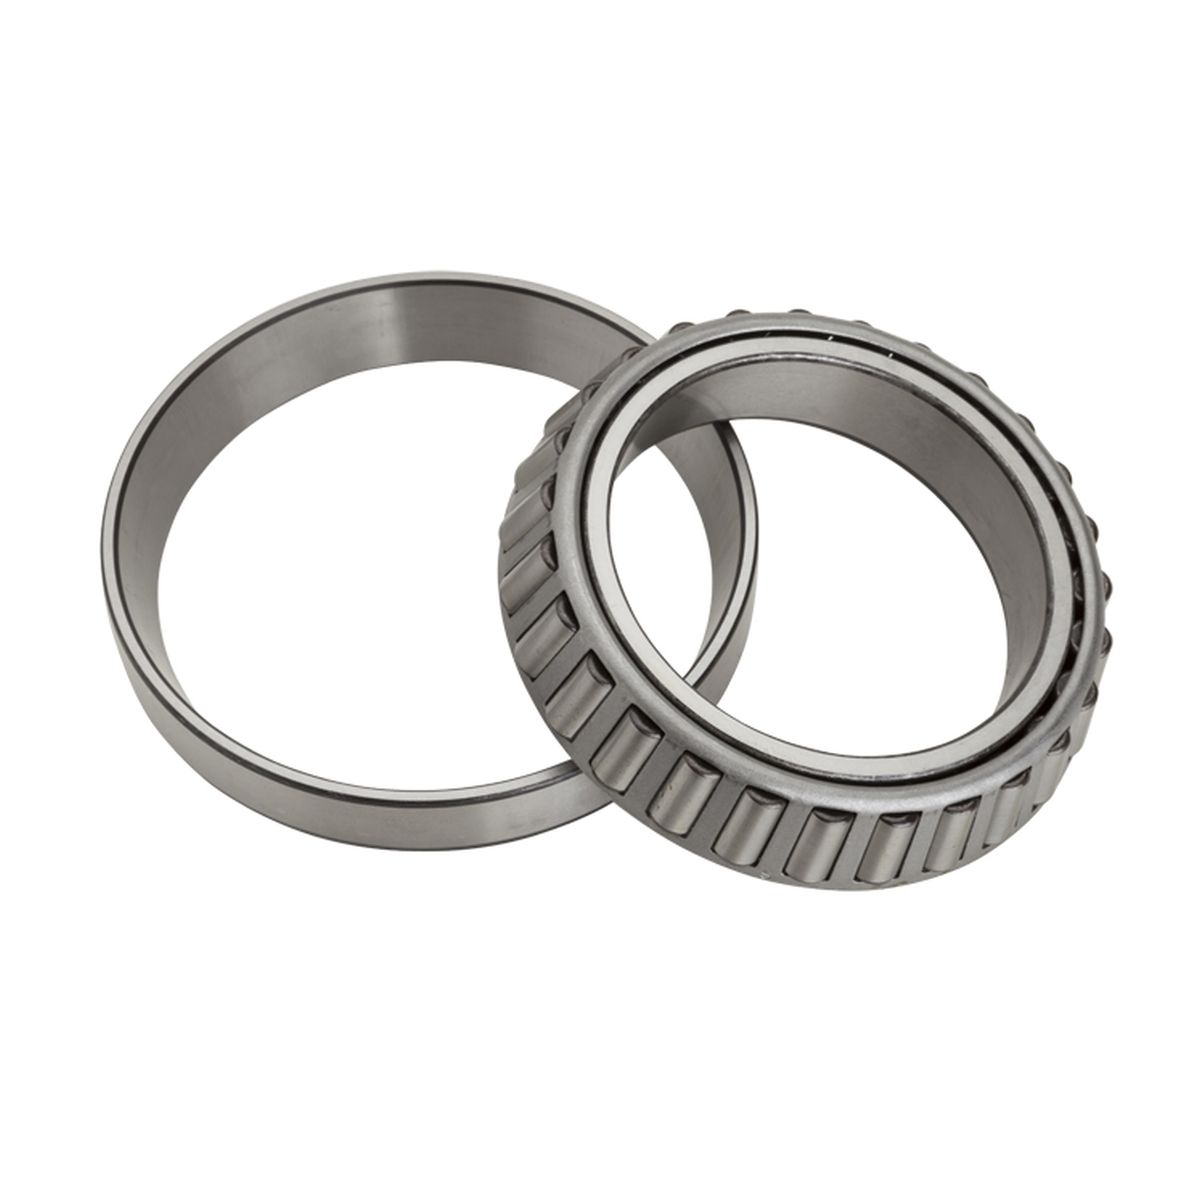 NTN cup and cone tapered roller bearing set